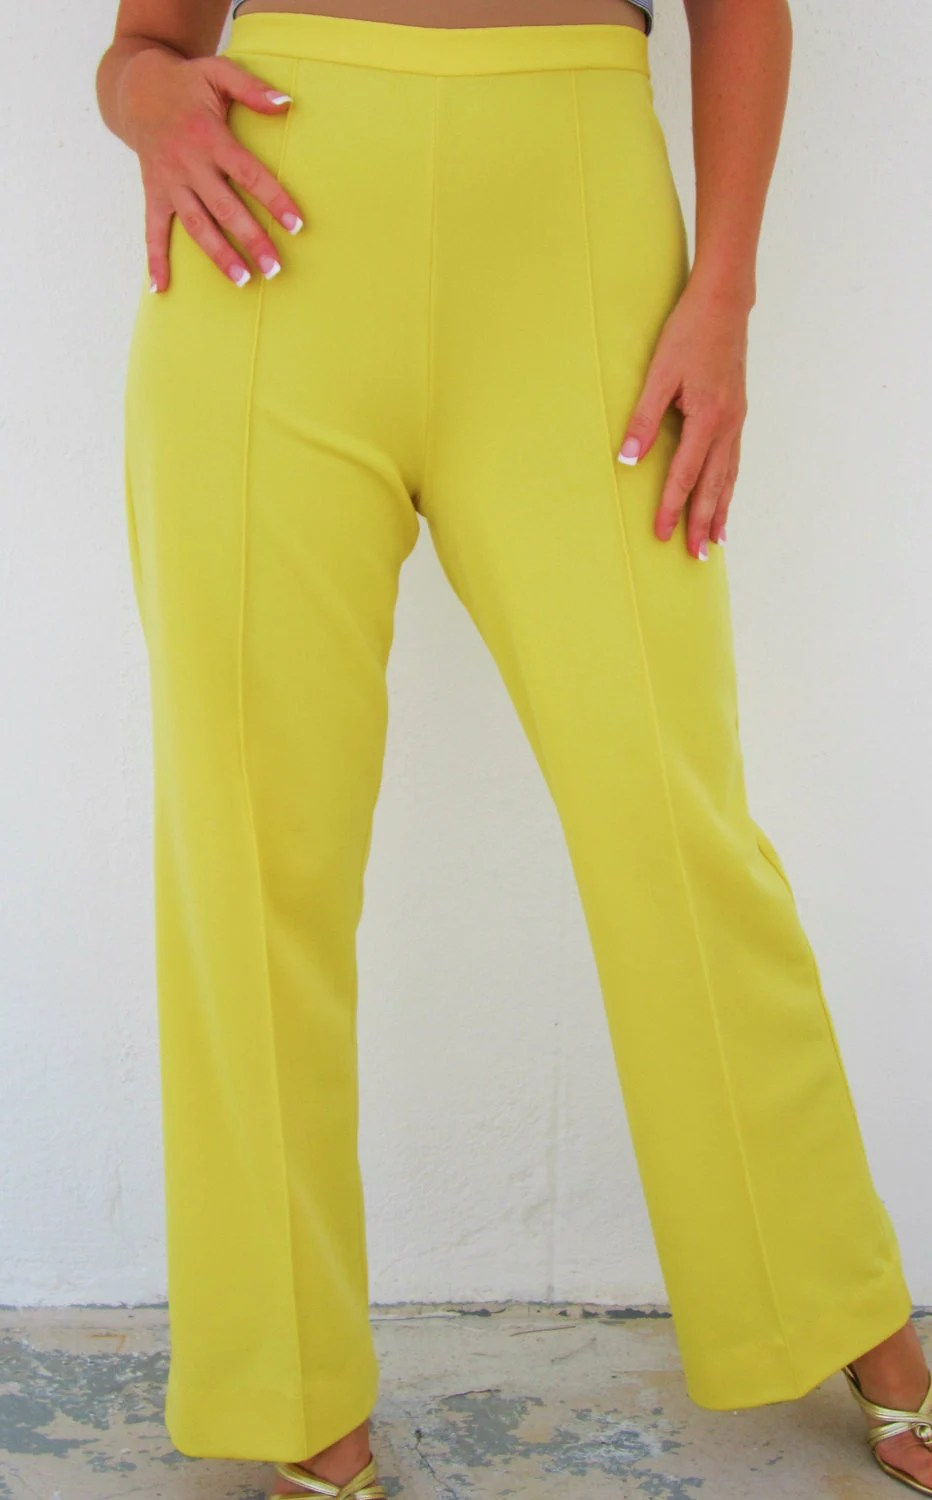 70s SUPER HIGH WAISTED Pants Bright Yellow Flares Mod Hippie to Hottie Womens Stretch Trousers - swankyturtle